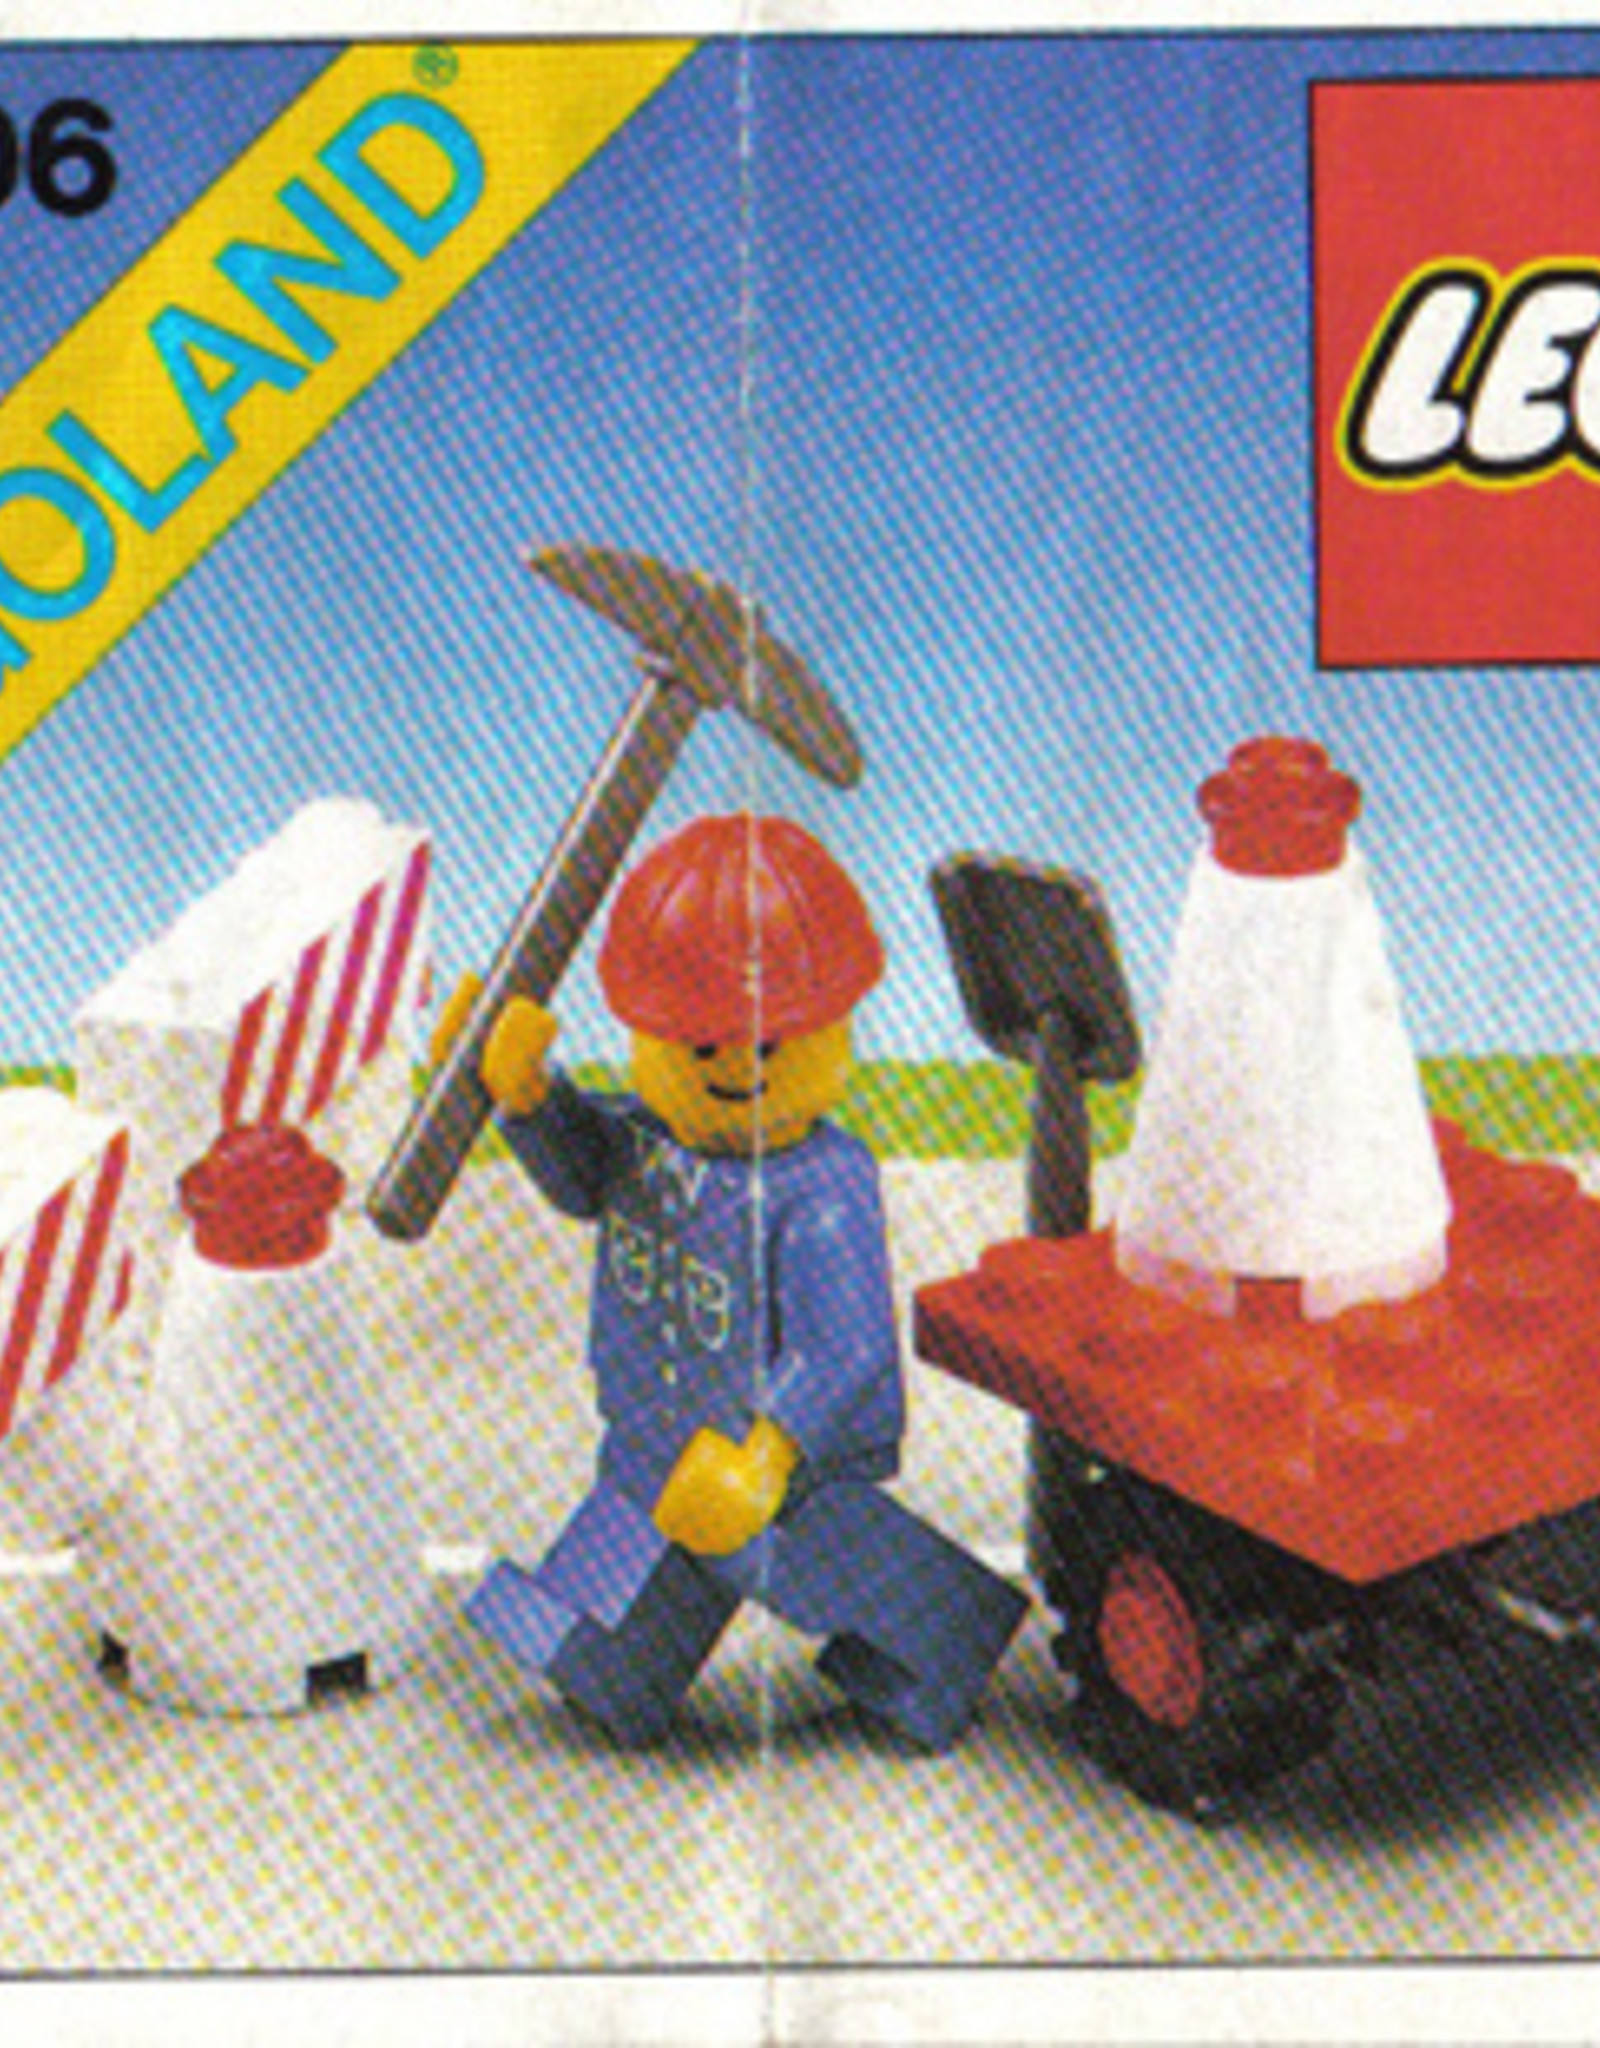 LEGO LEGO 6606 Road Repair Set LEGOLAND